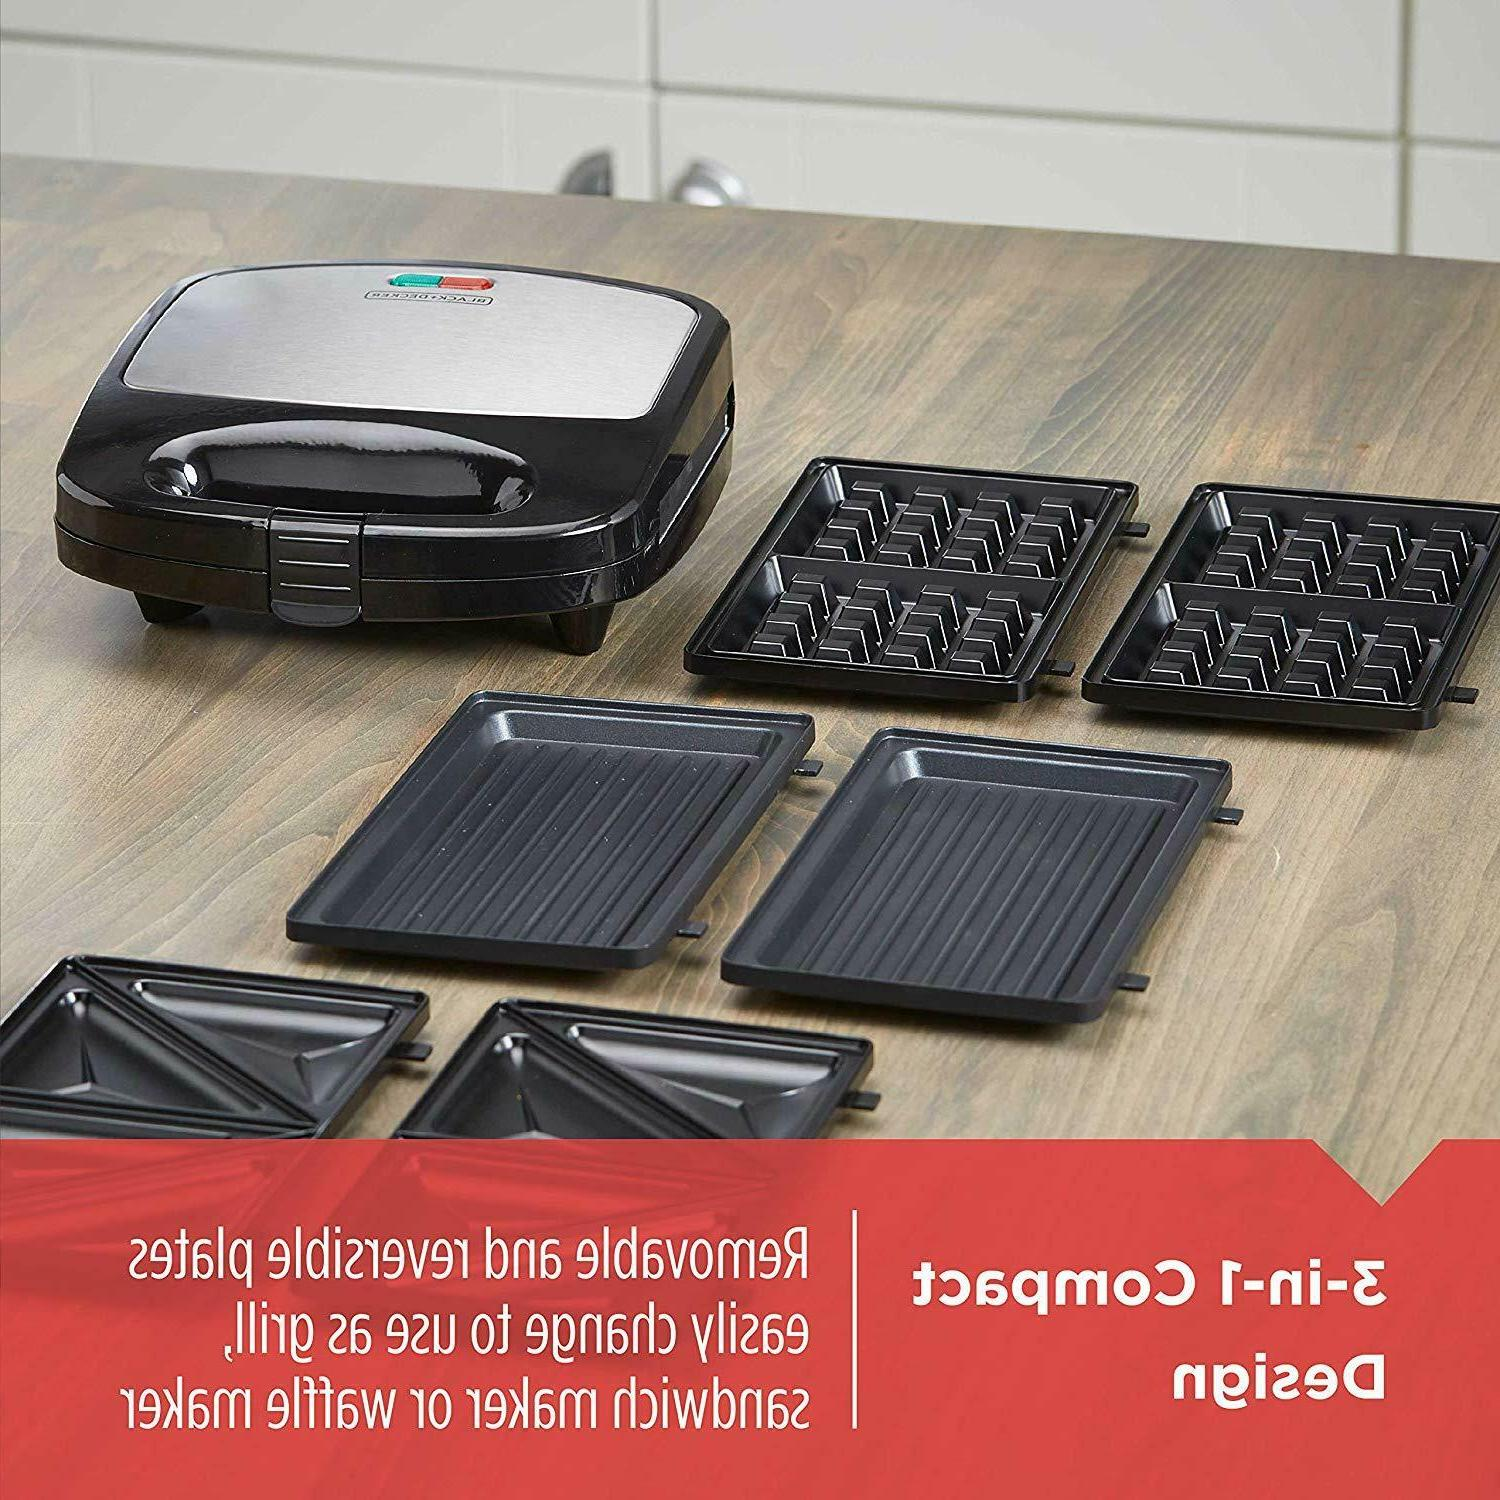 BLACK in 1 Meal Waffle Grill Maker